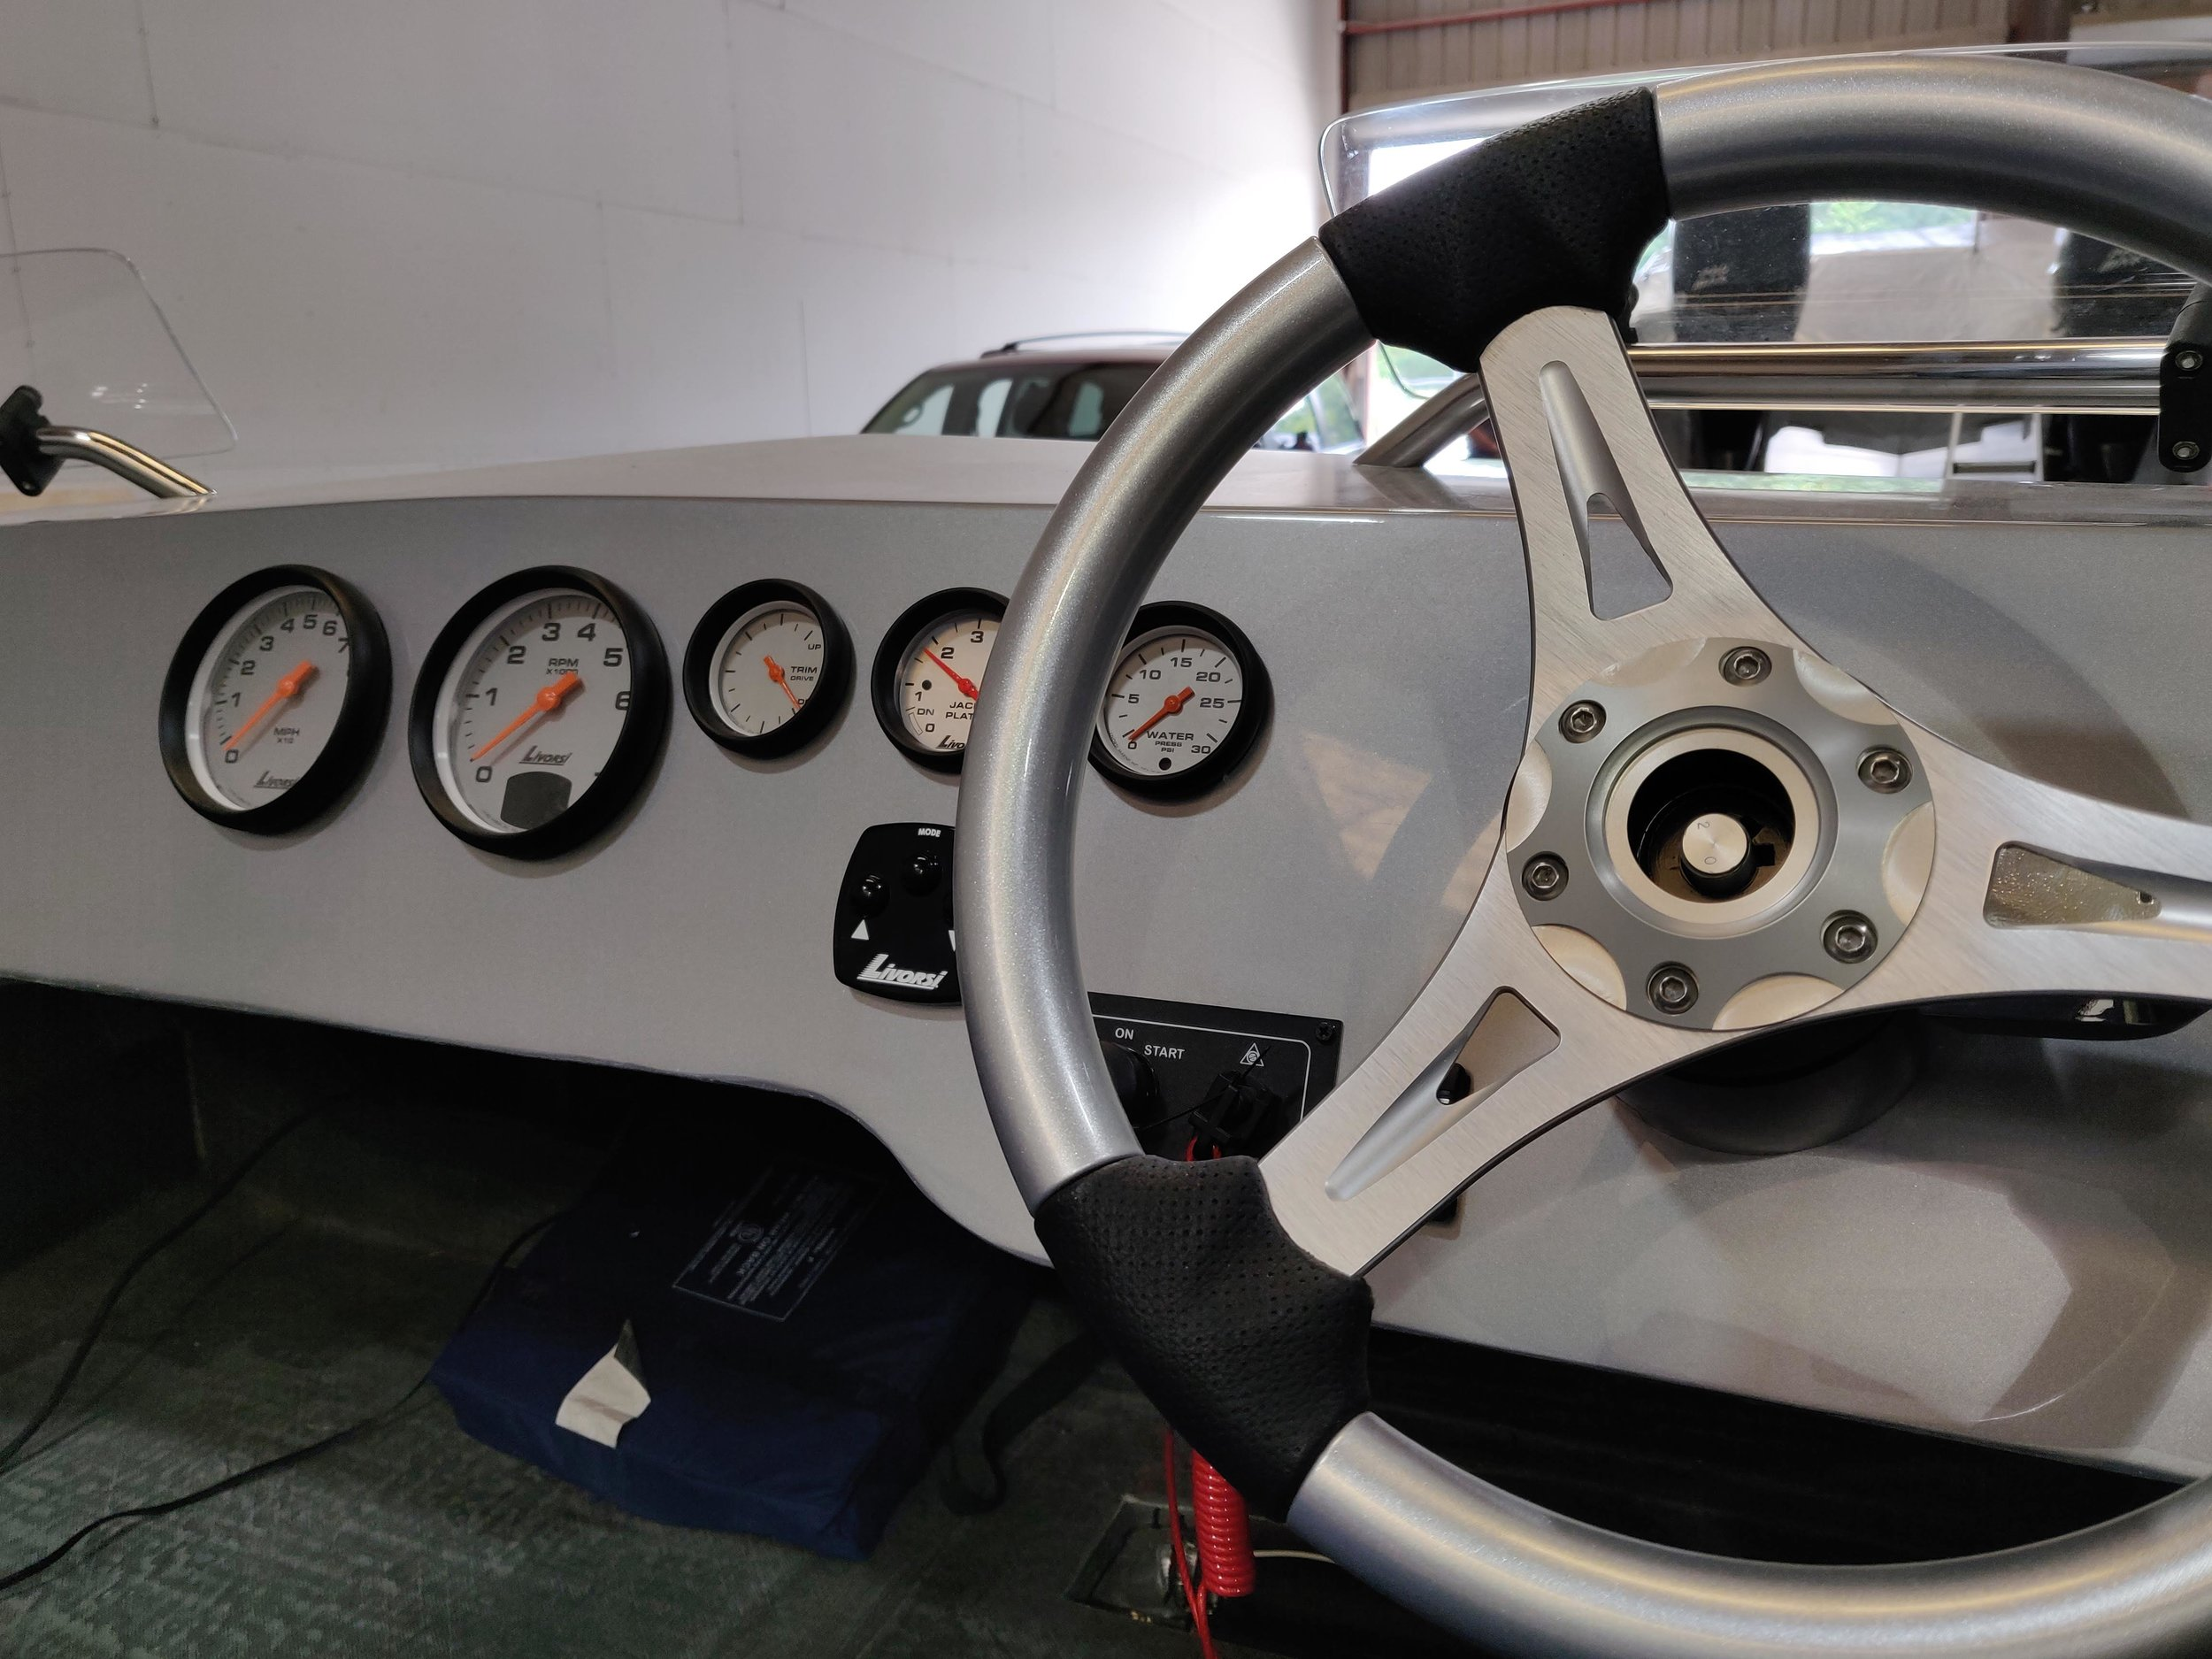 The oversize Livorsi Marine platinum dials, with mega rims look very clean. The dash is all business. The Evinrude Icon screen fits nicely on the starboard side of the helm. The wheel is from Livorsi Marine as well. The seat pictured is just for test fitting, not the actual seat.